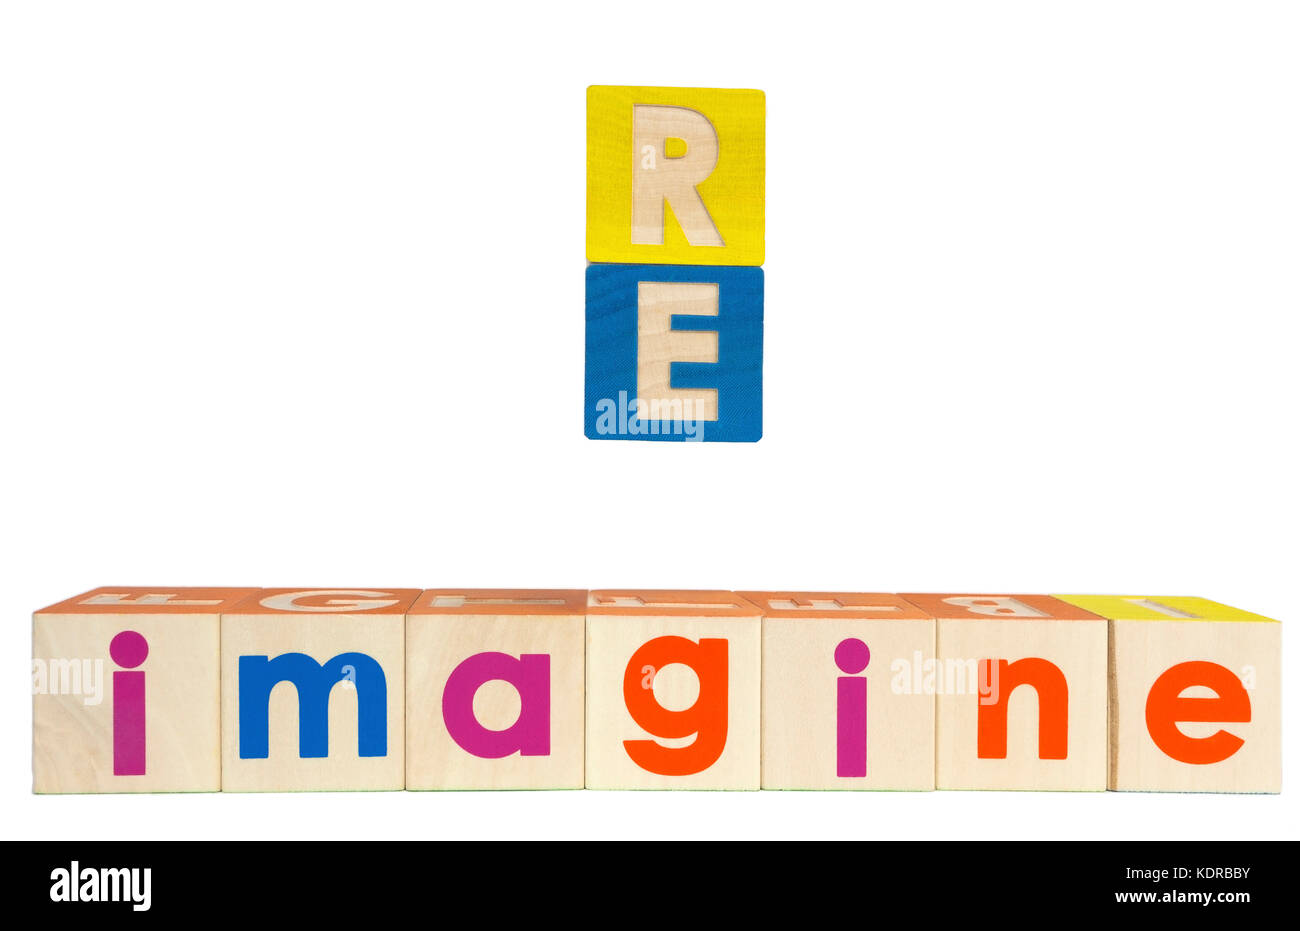 RE IMAGINE concept spelled out with toy blocks. Isolated. - Stock Image